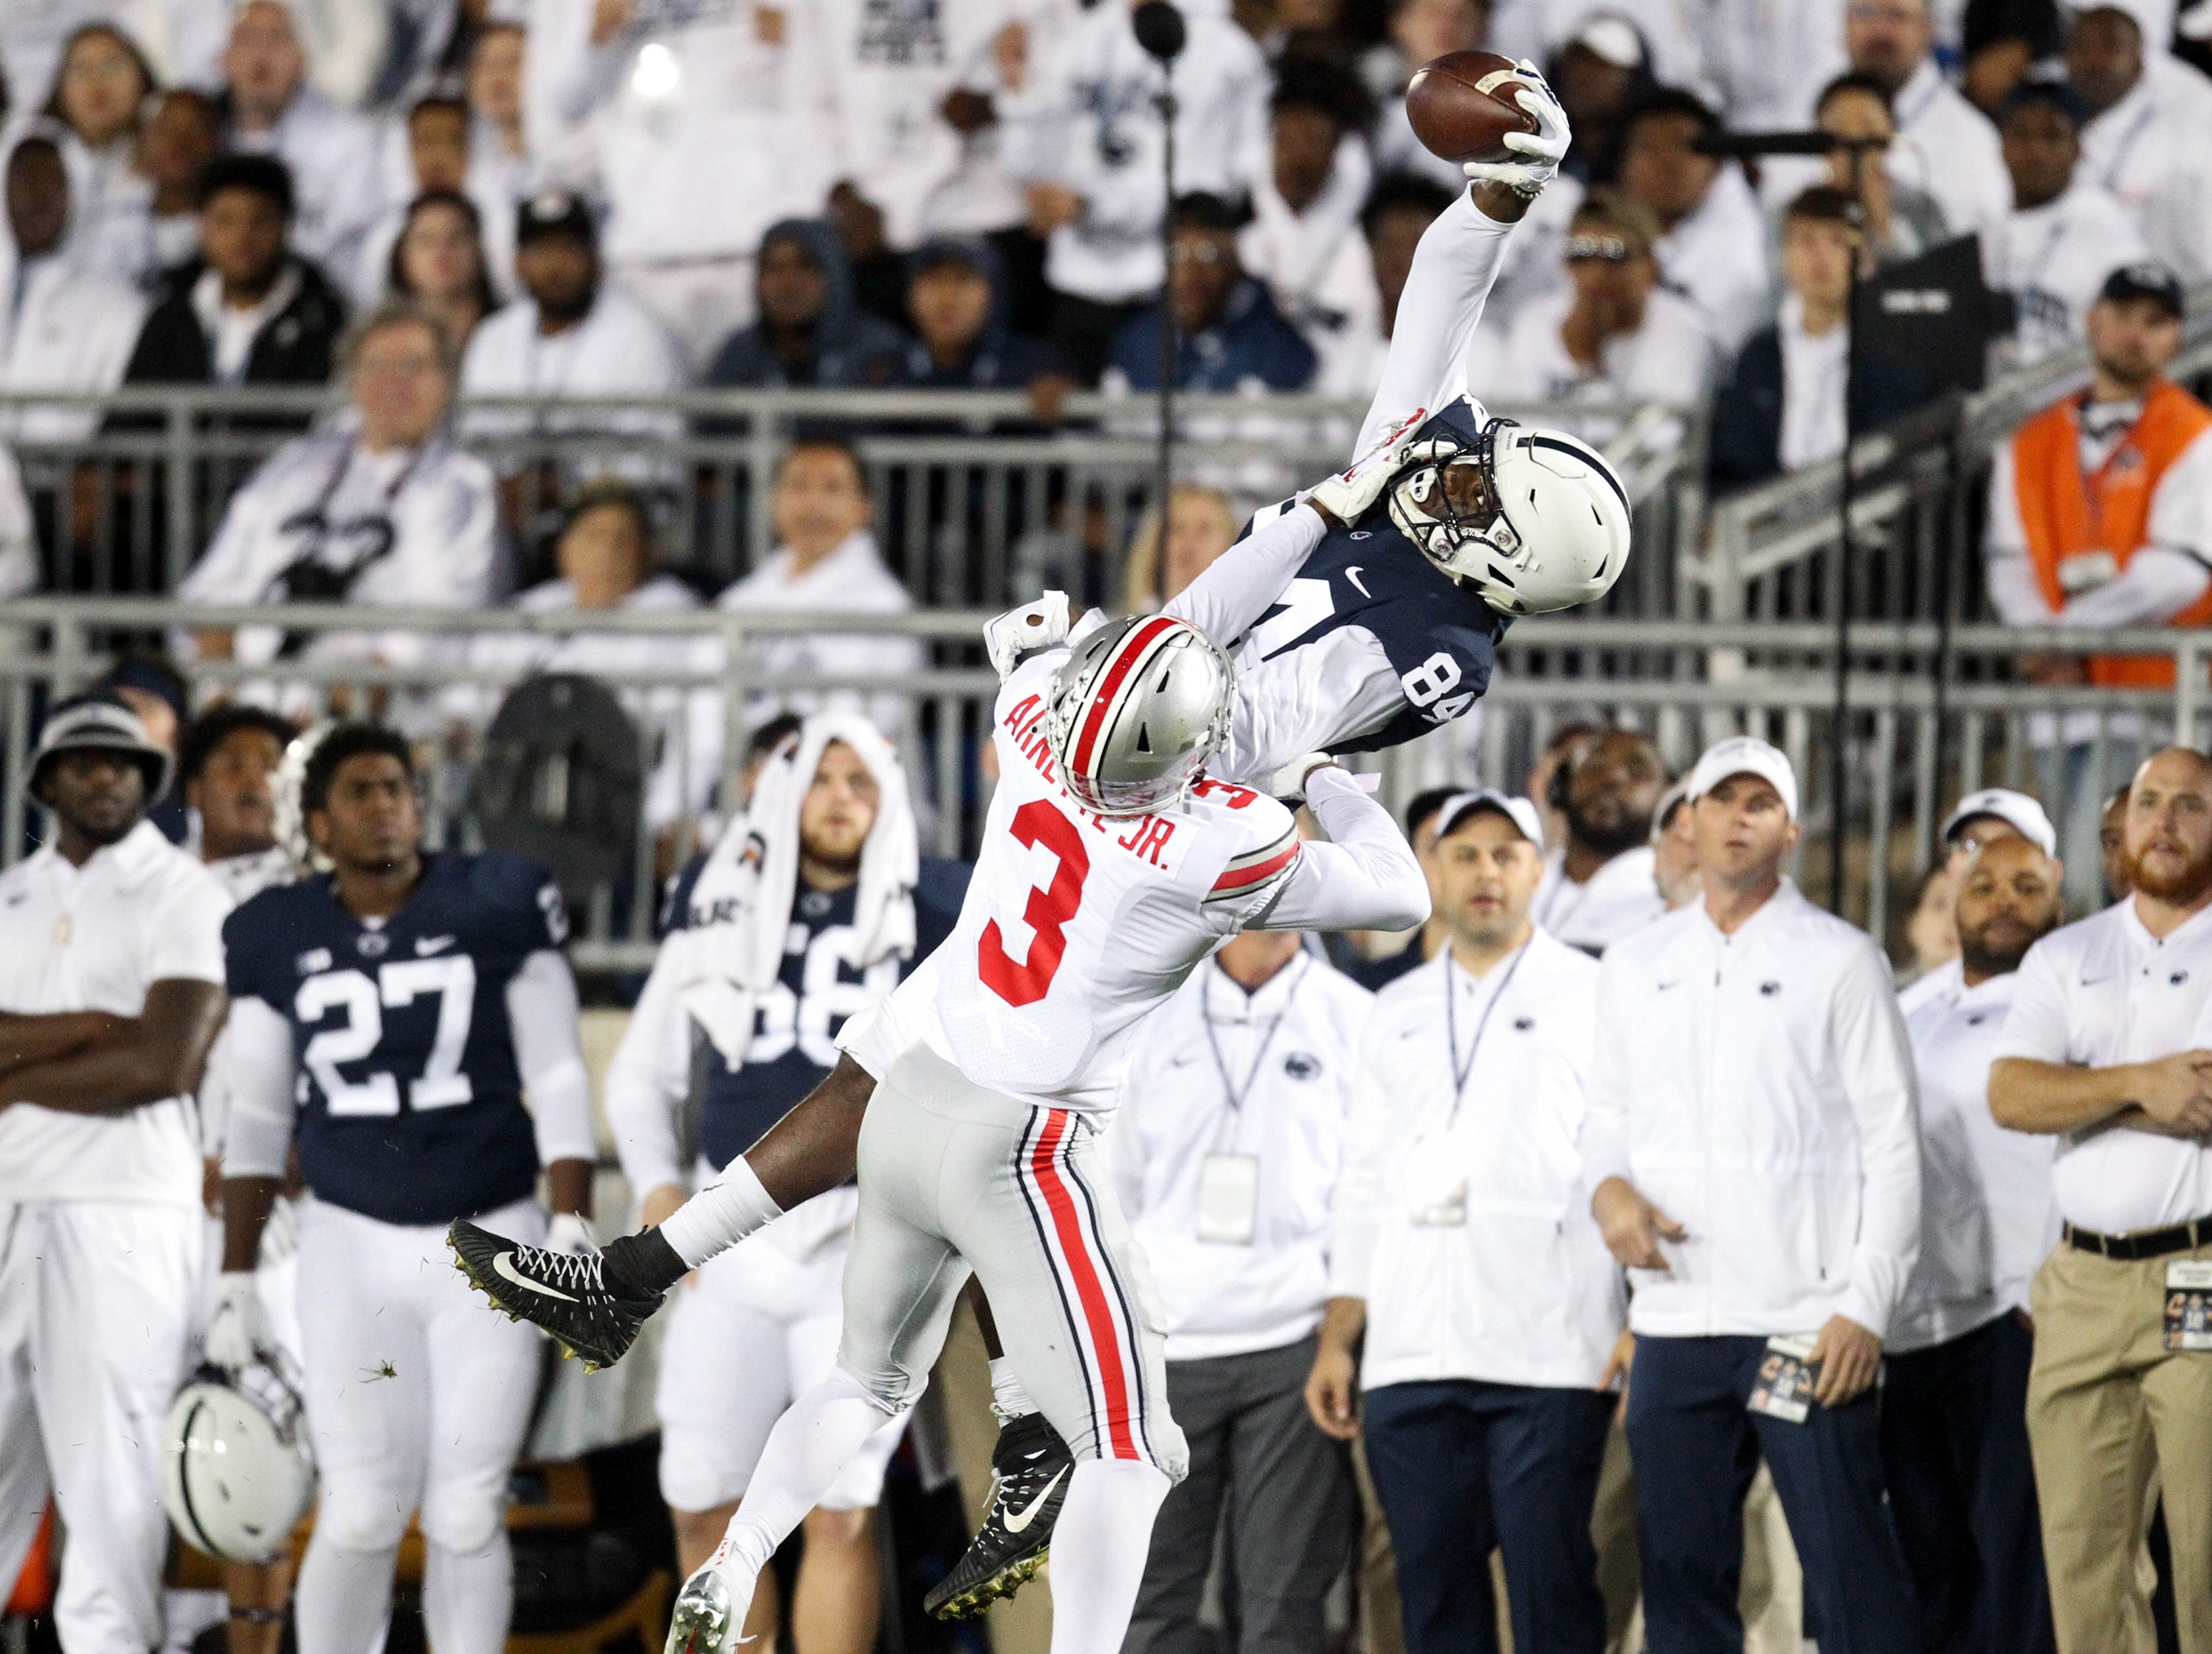 Sept. 29: Penn State Nittany Lions wide receiver Juwan Johnson makes a catch during the first quarter against the Ohio State Buckeyes at Beaver Stadium.